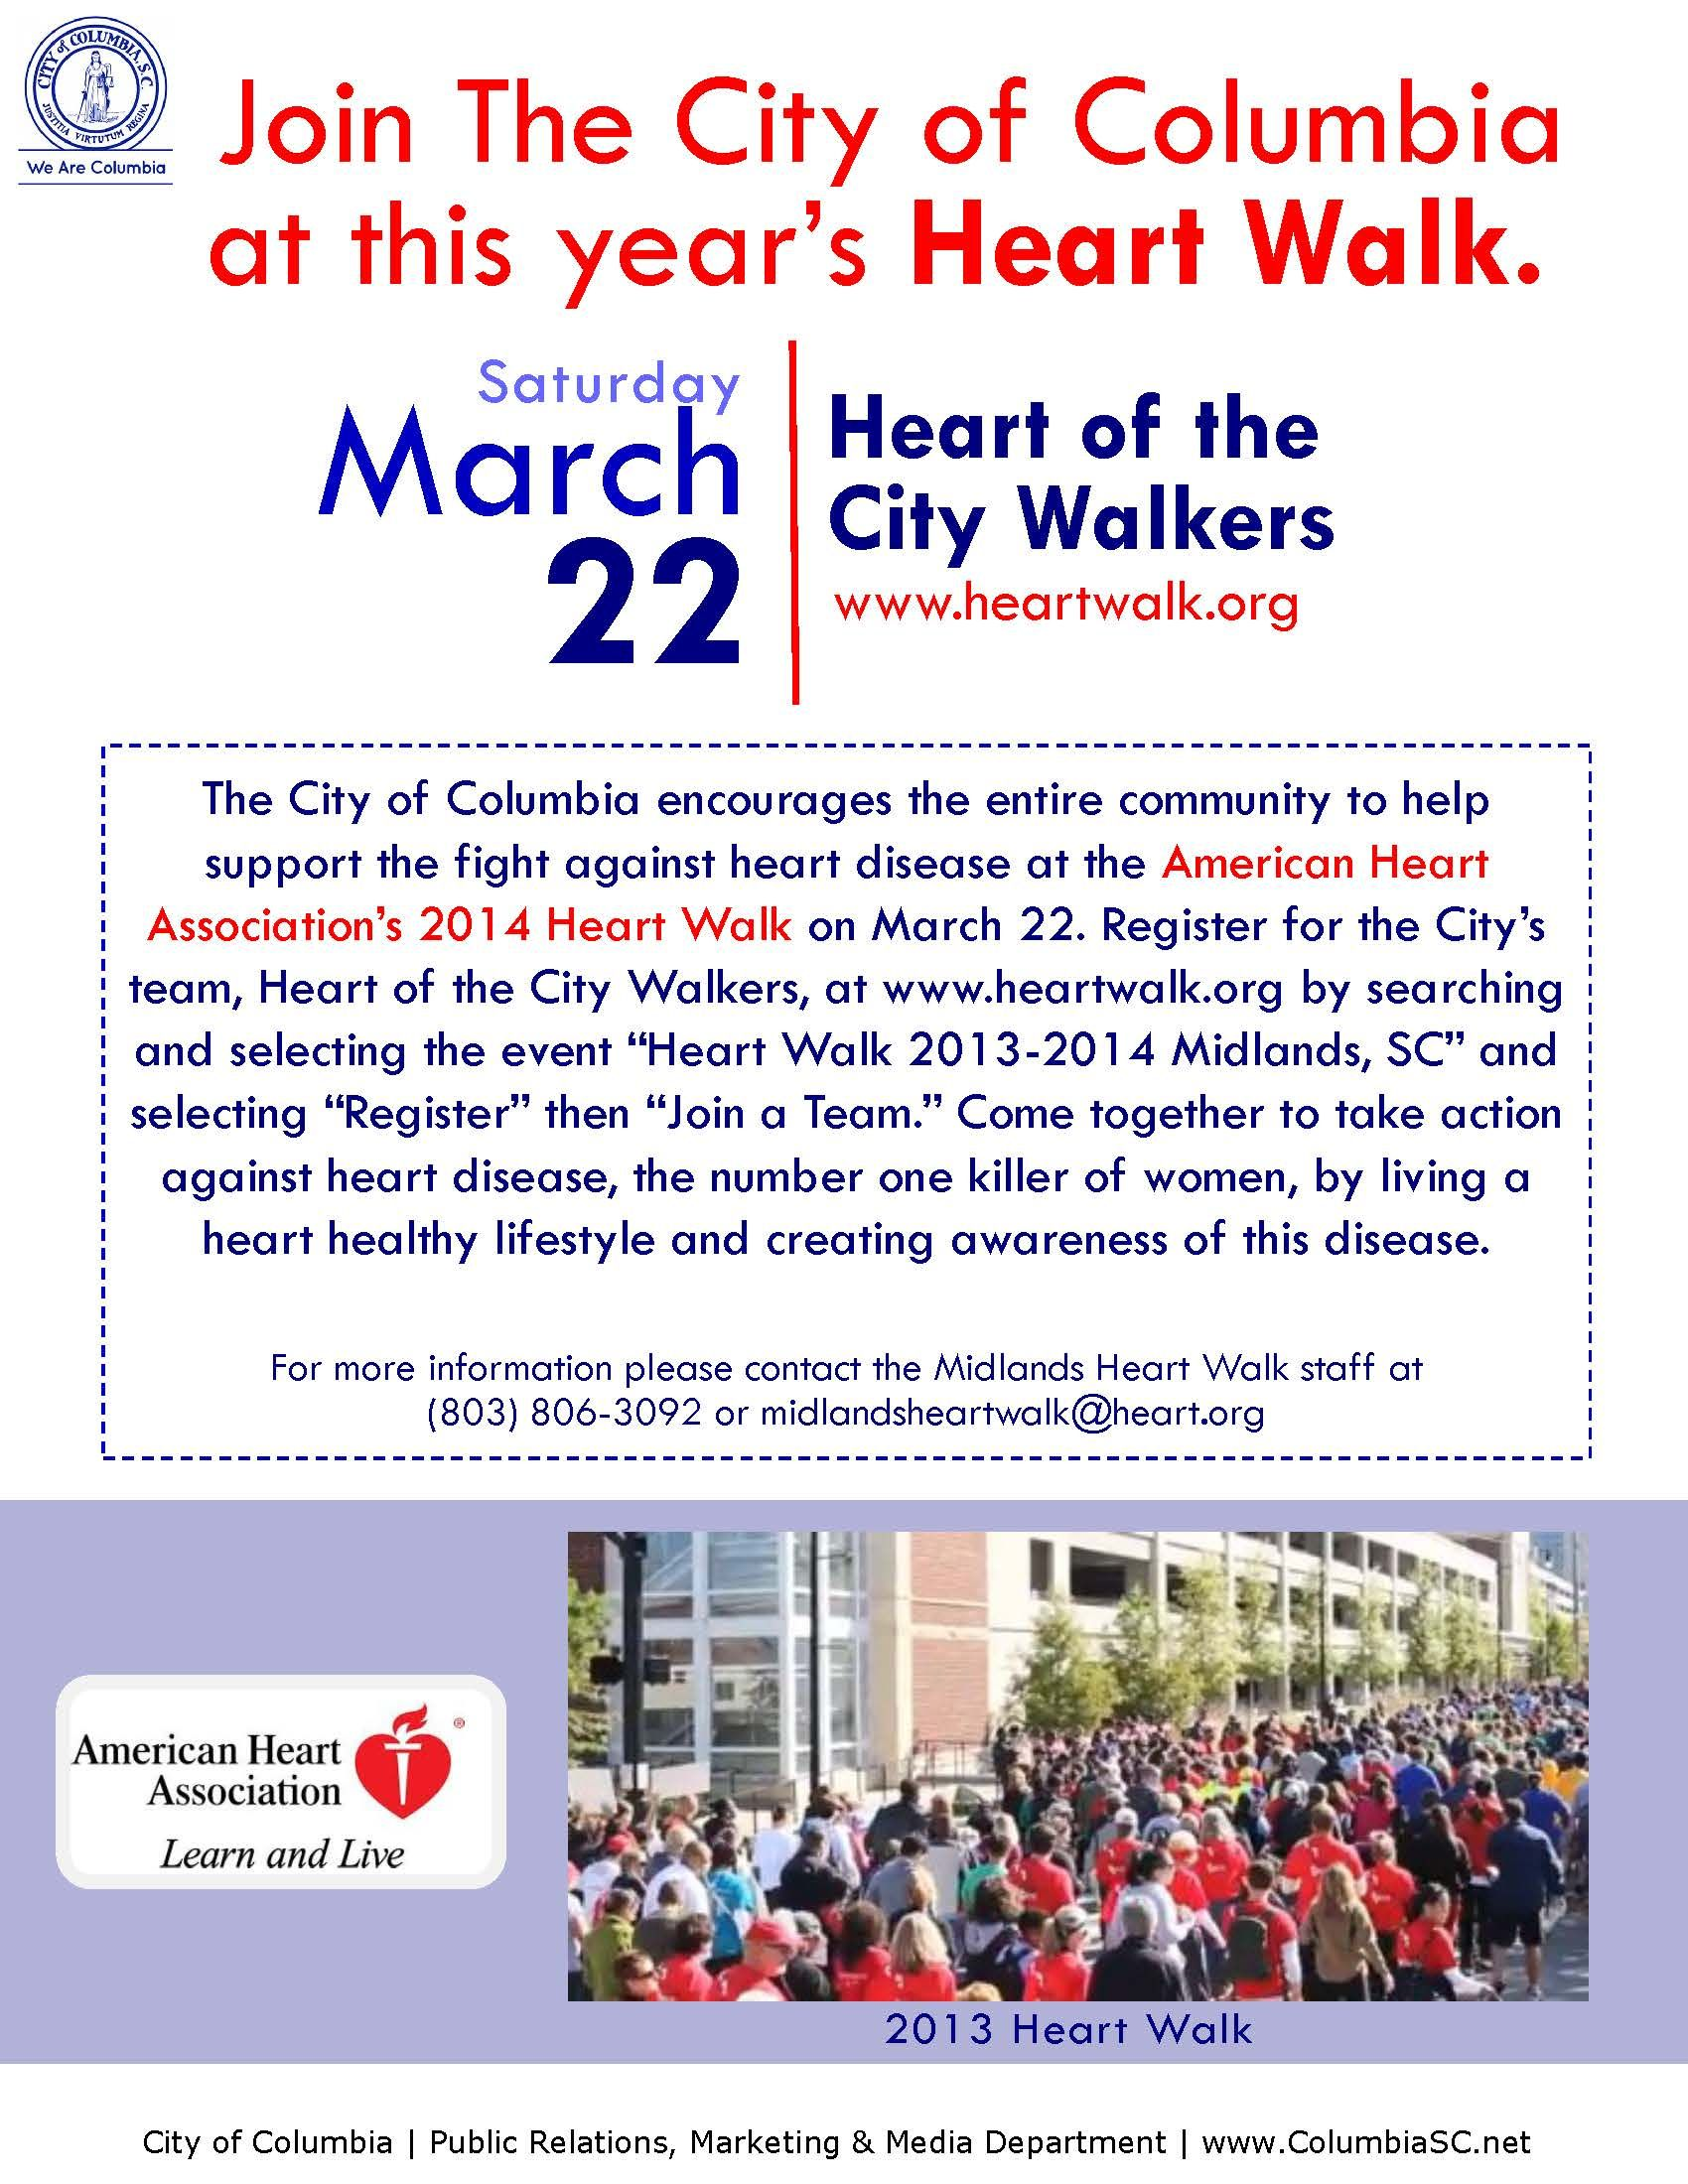 Register for the City's team, Heart of The City Walkers, at this year's Heart Walk on Sat. March 22 at http://bit.ly/1d6SzkE